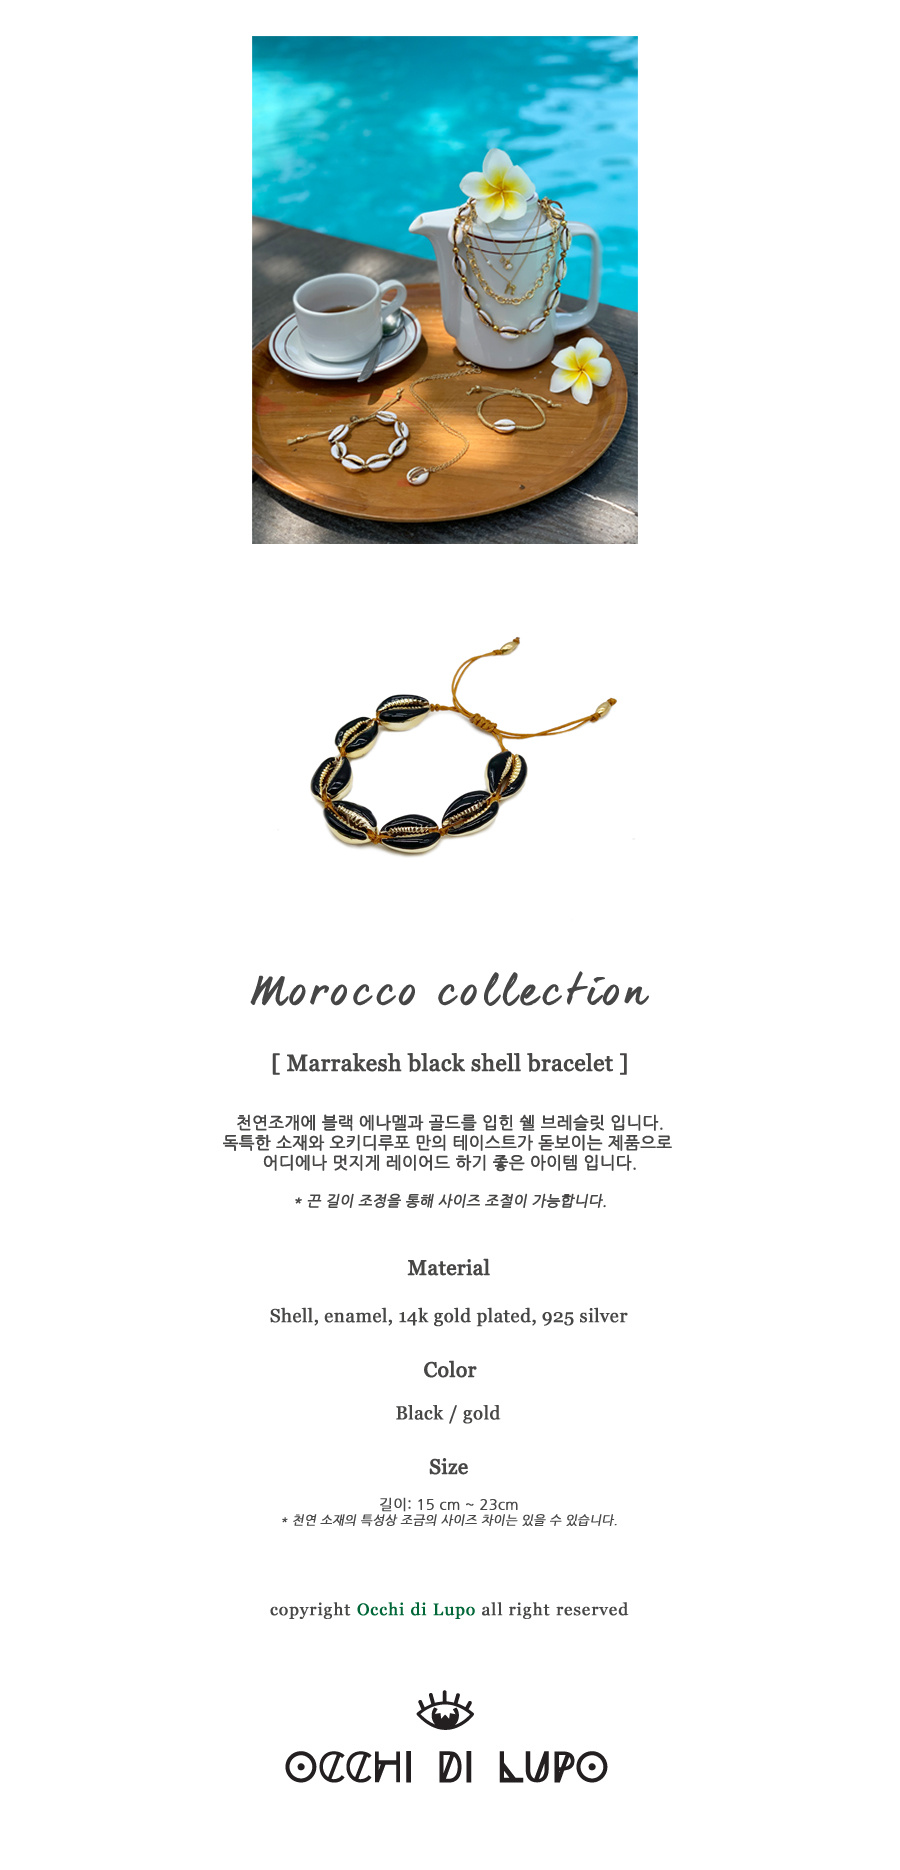 오키디루포(OCCHI DI LUPO) Marrakesh black shell bracelet